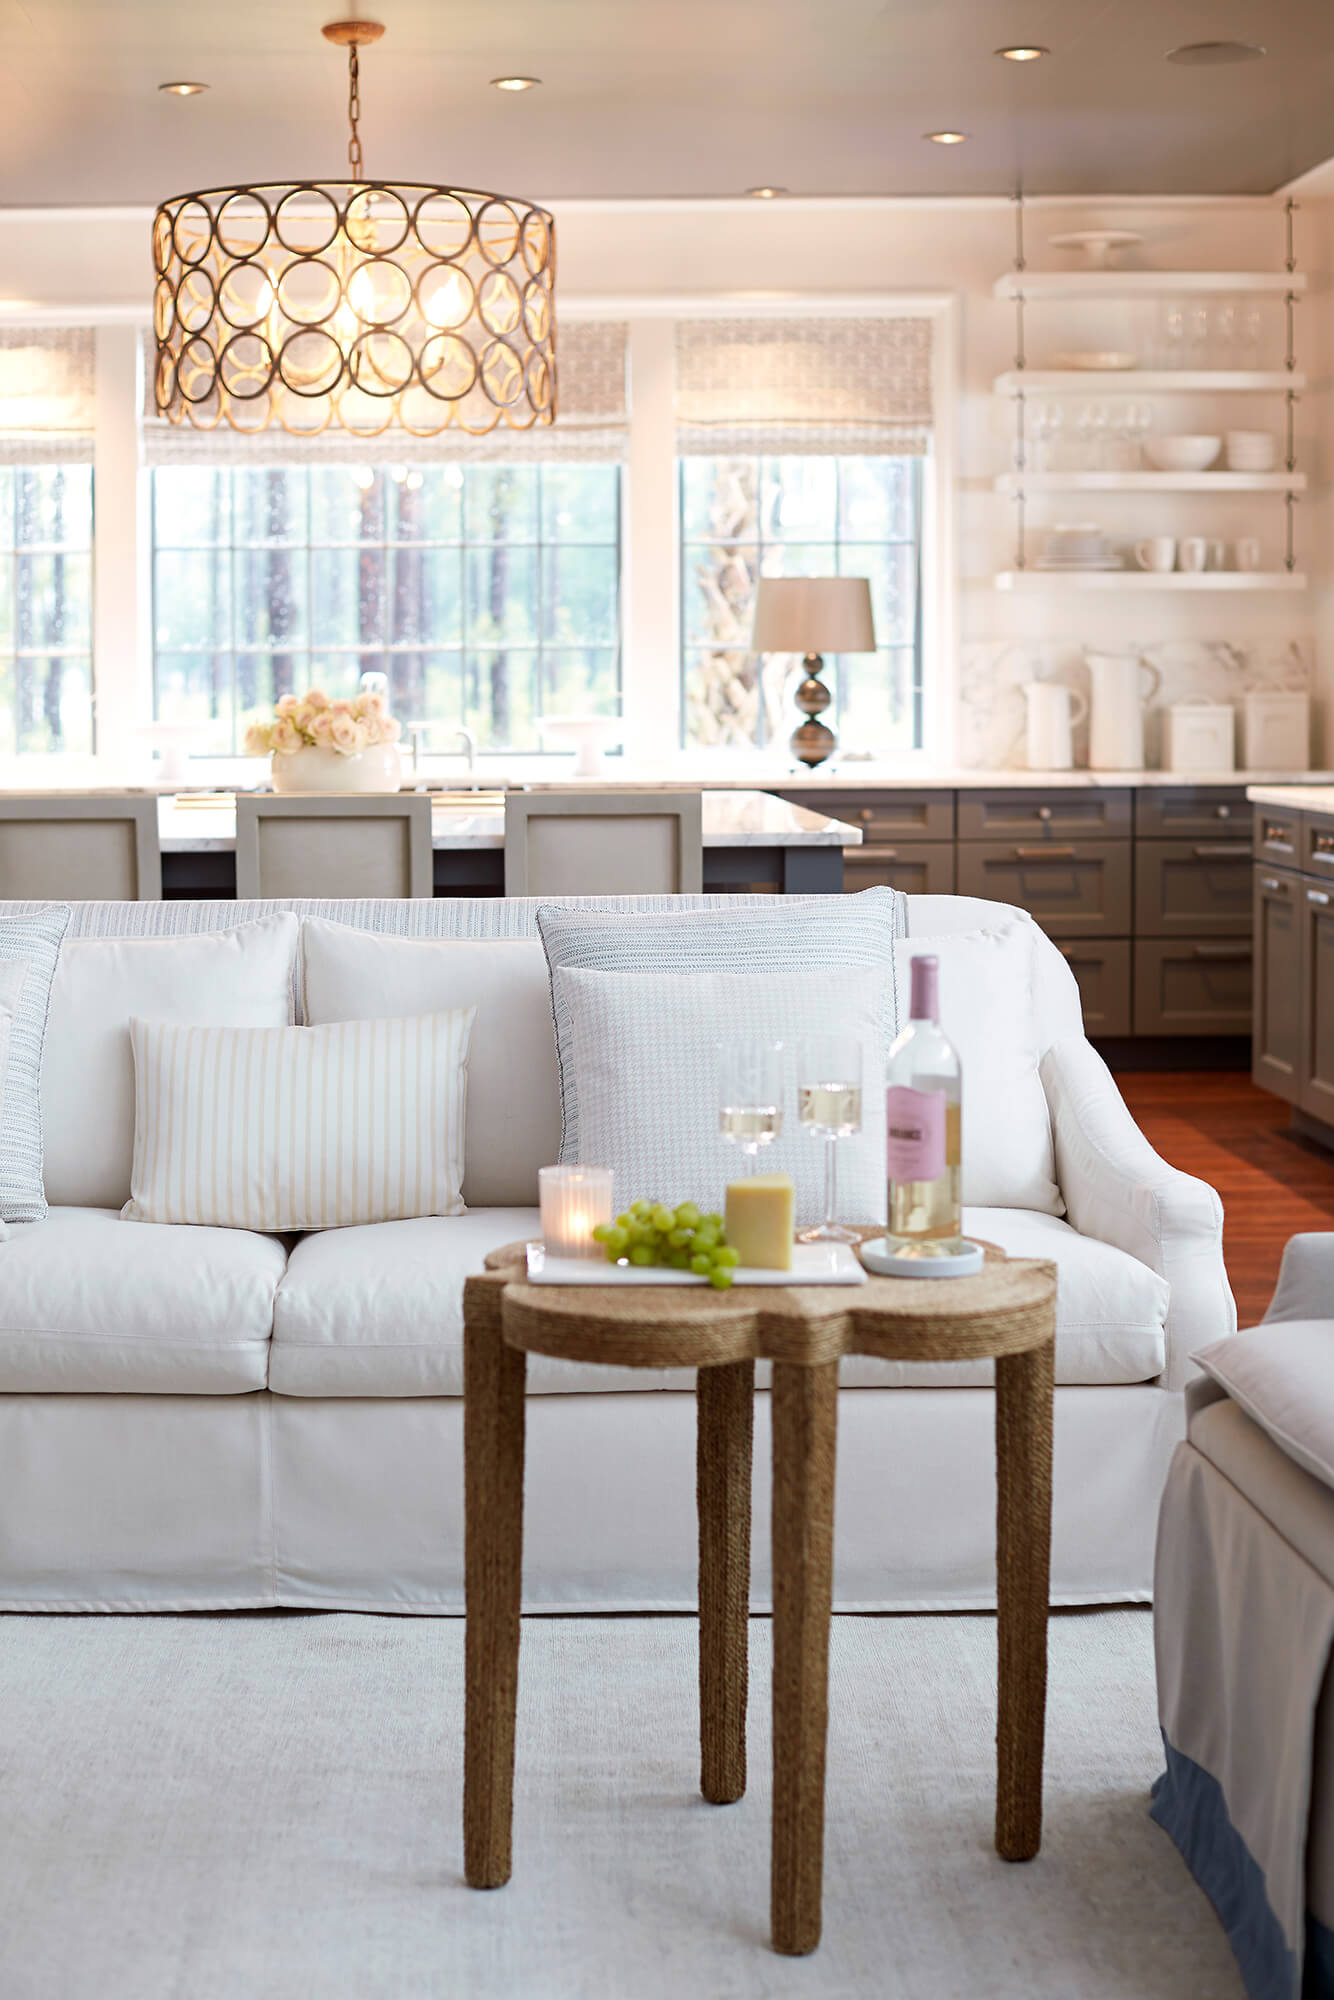 A white sofa upholstered in Sunbrella fabrics is accented with throw pillows of textured neutral hues